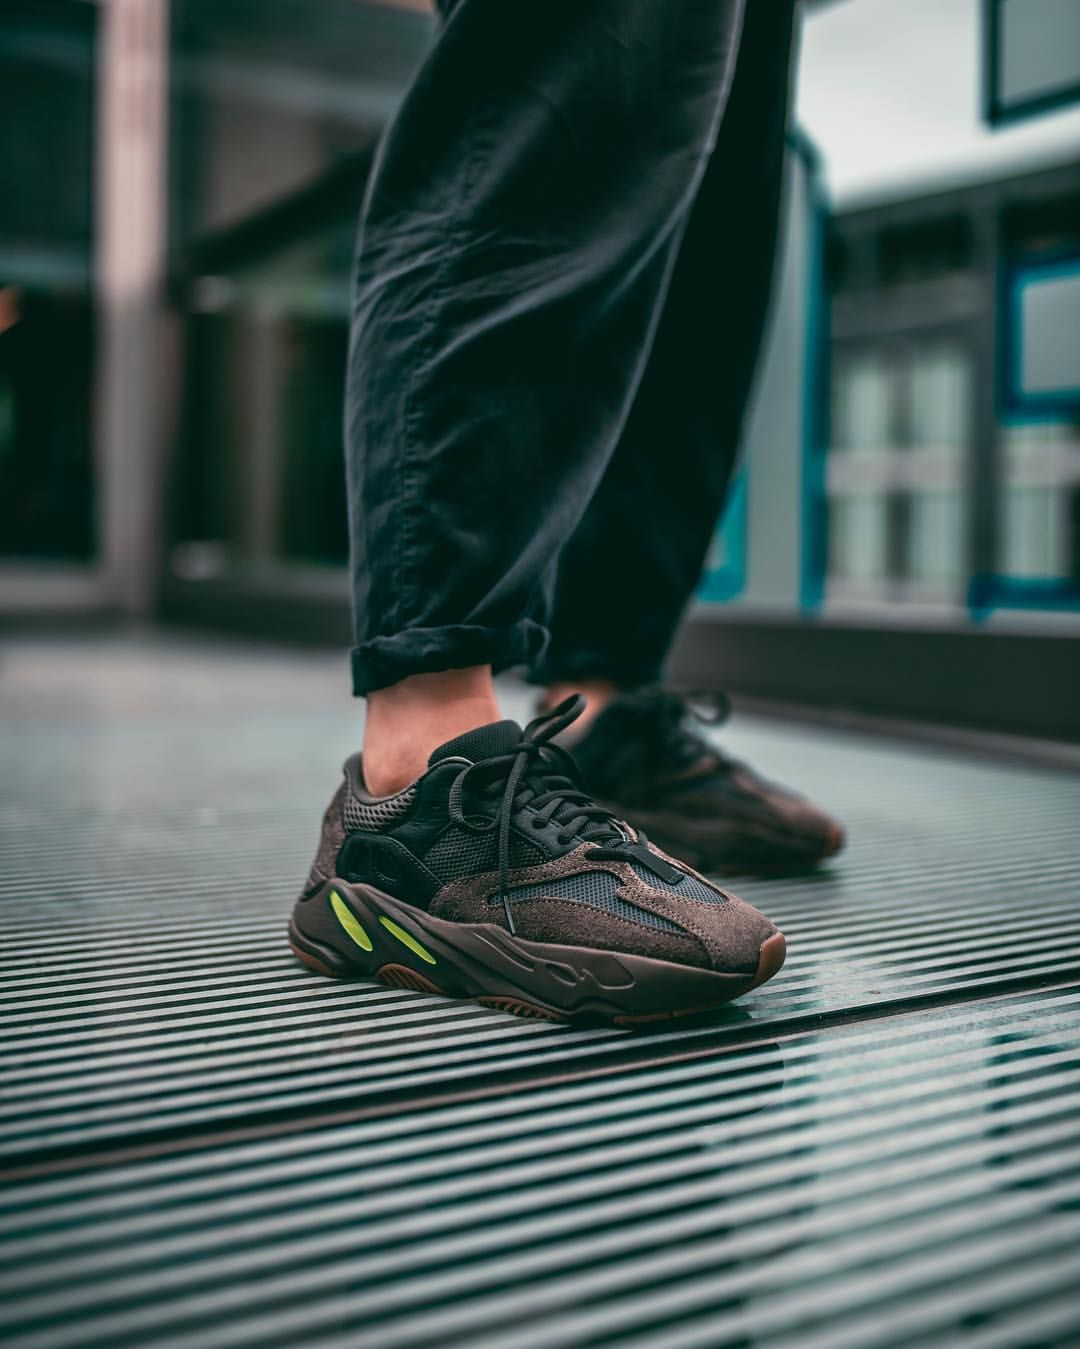 release date vast selection 2018 shoes Adidas yeezy 700 only $46 in amazon.com and get one free ...